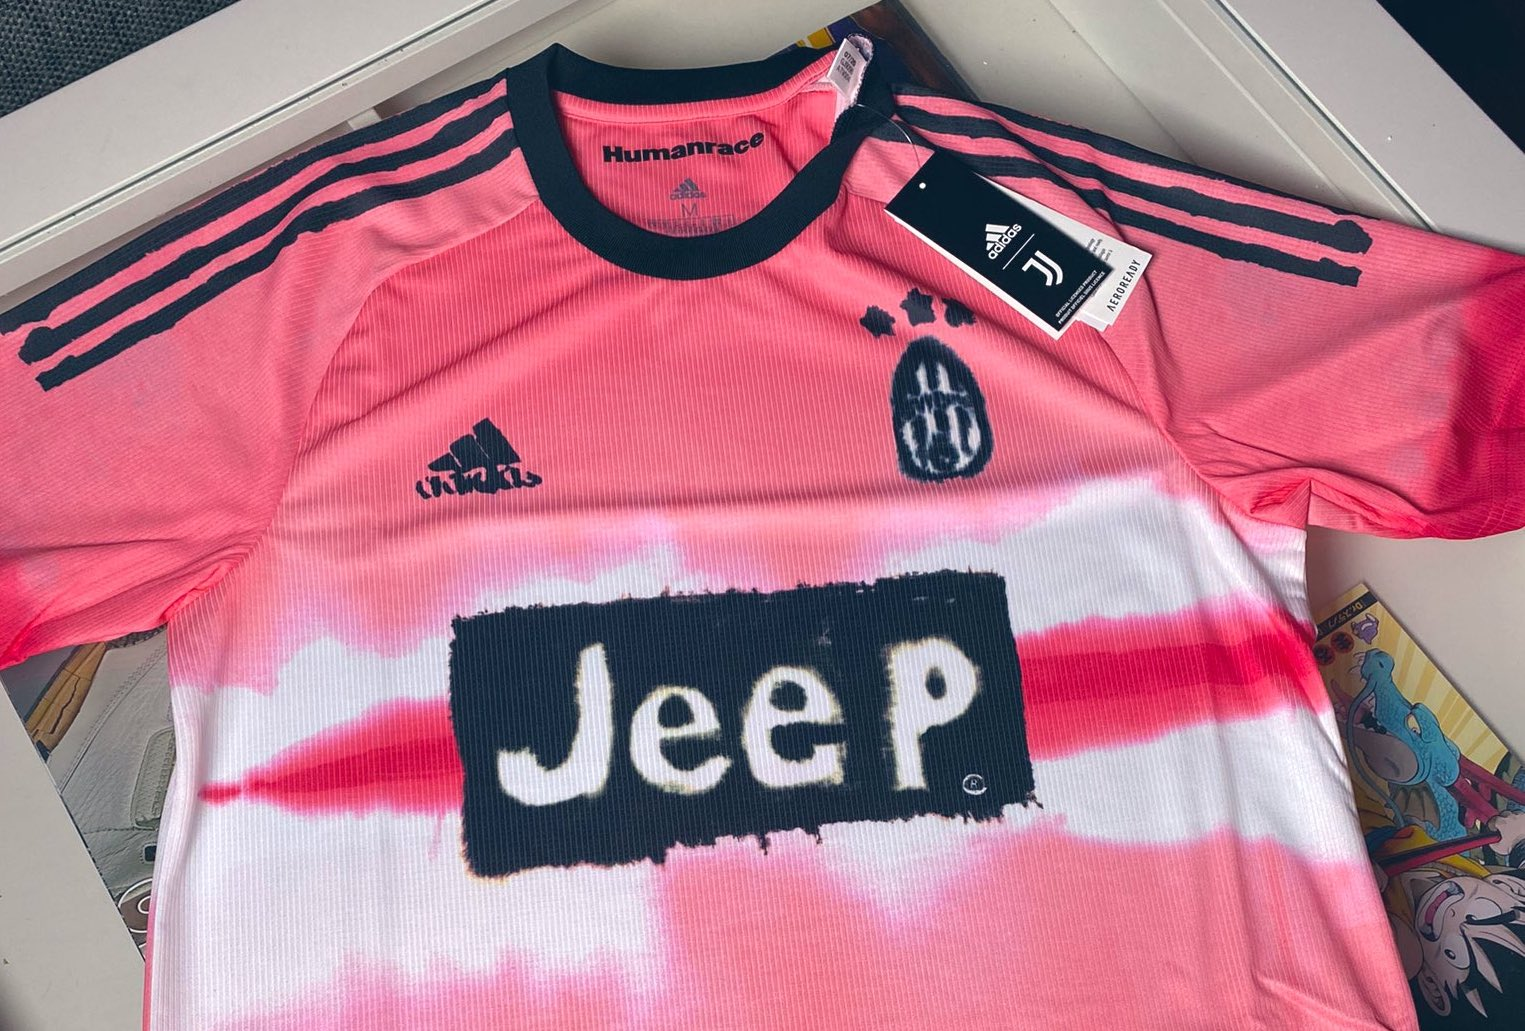 juventus back to pink in adidas x pharrell williams humanrace line of kits forza italian football juventus back to pink in adidas x